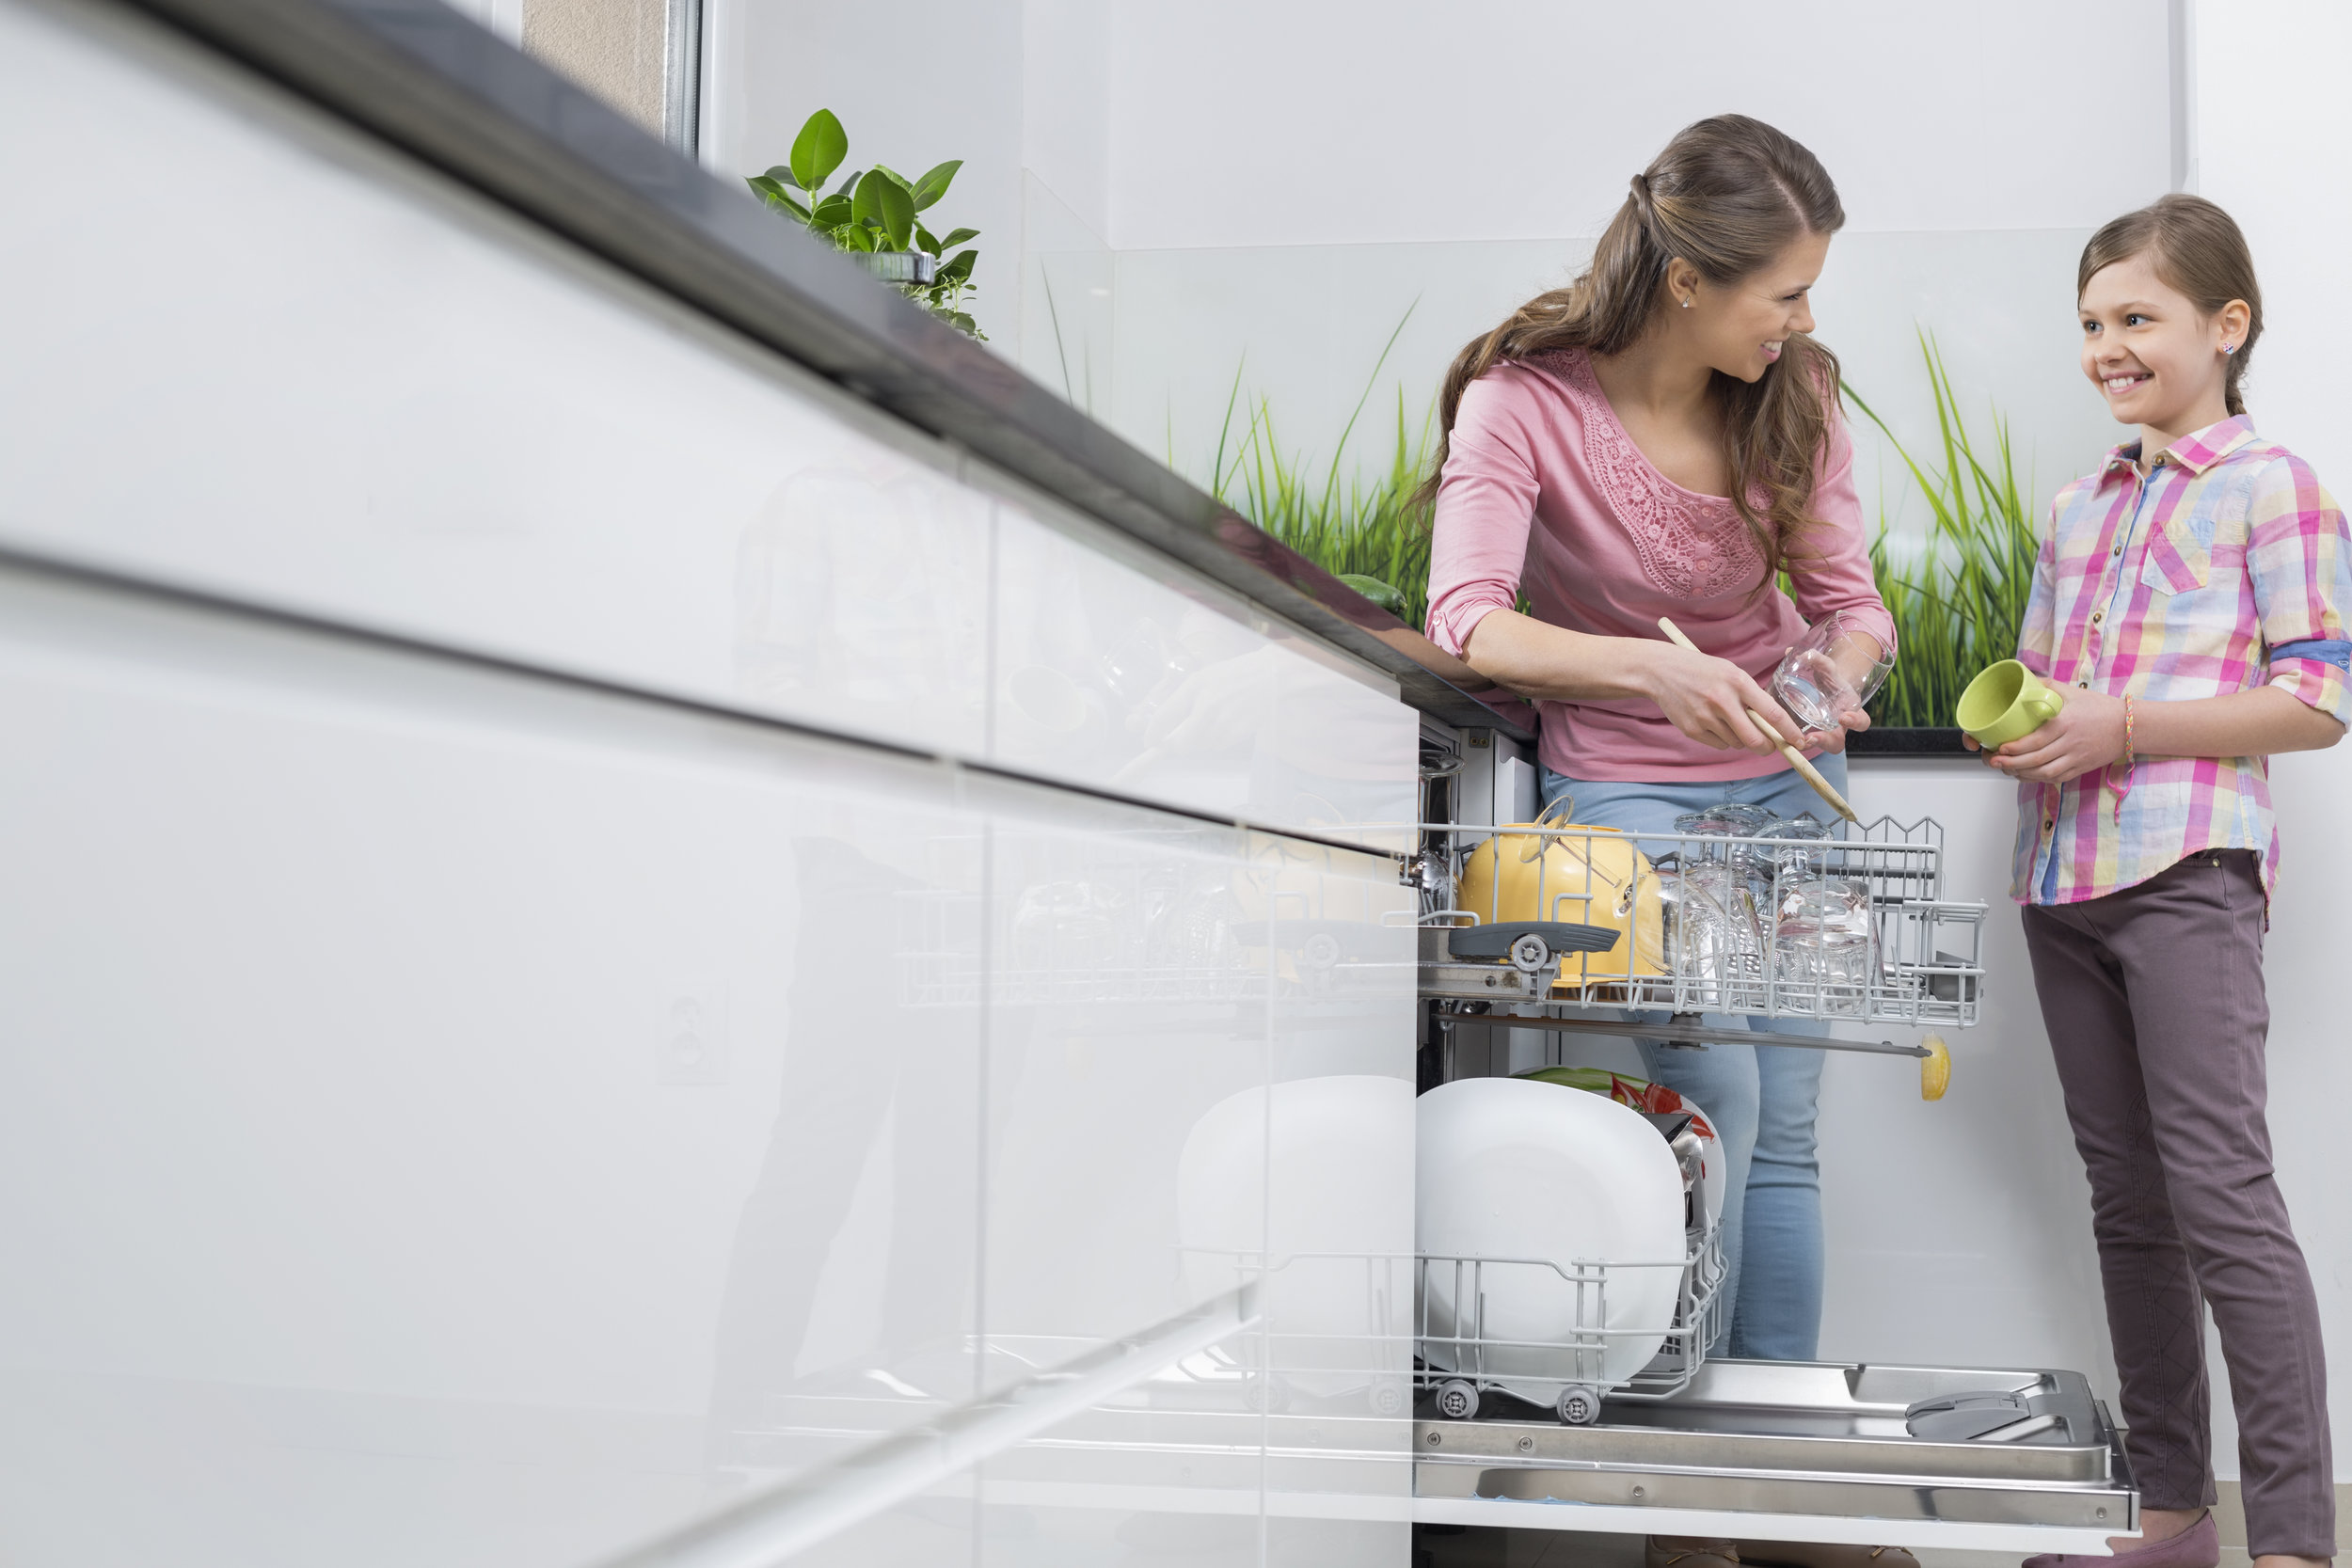 Clean dishes, Save money - You can cut down total cost by investing in an energy efficient dishwasher from over $20/month to $10/month, even with daily use.